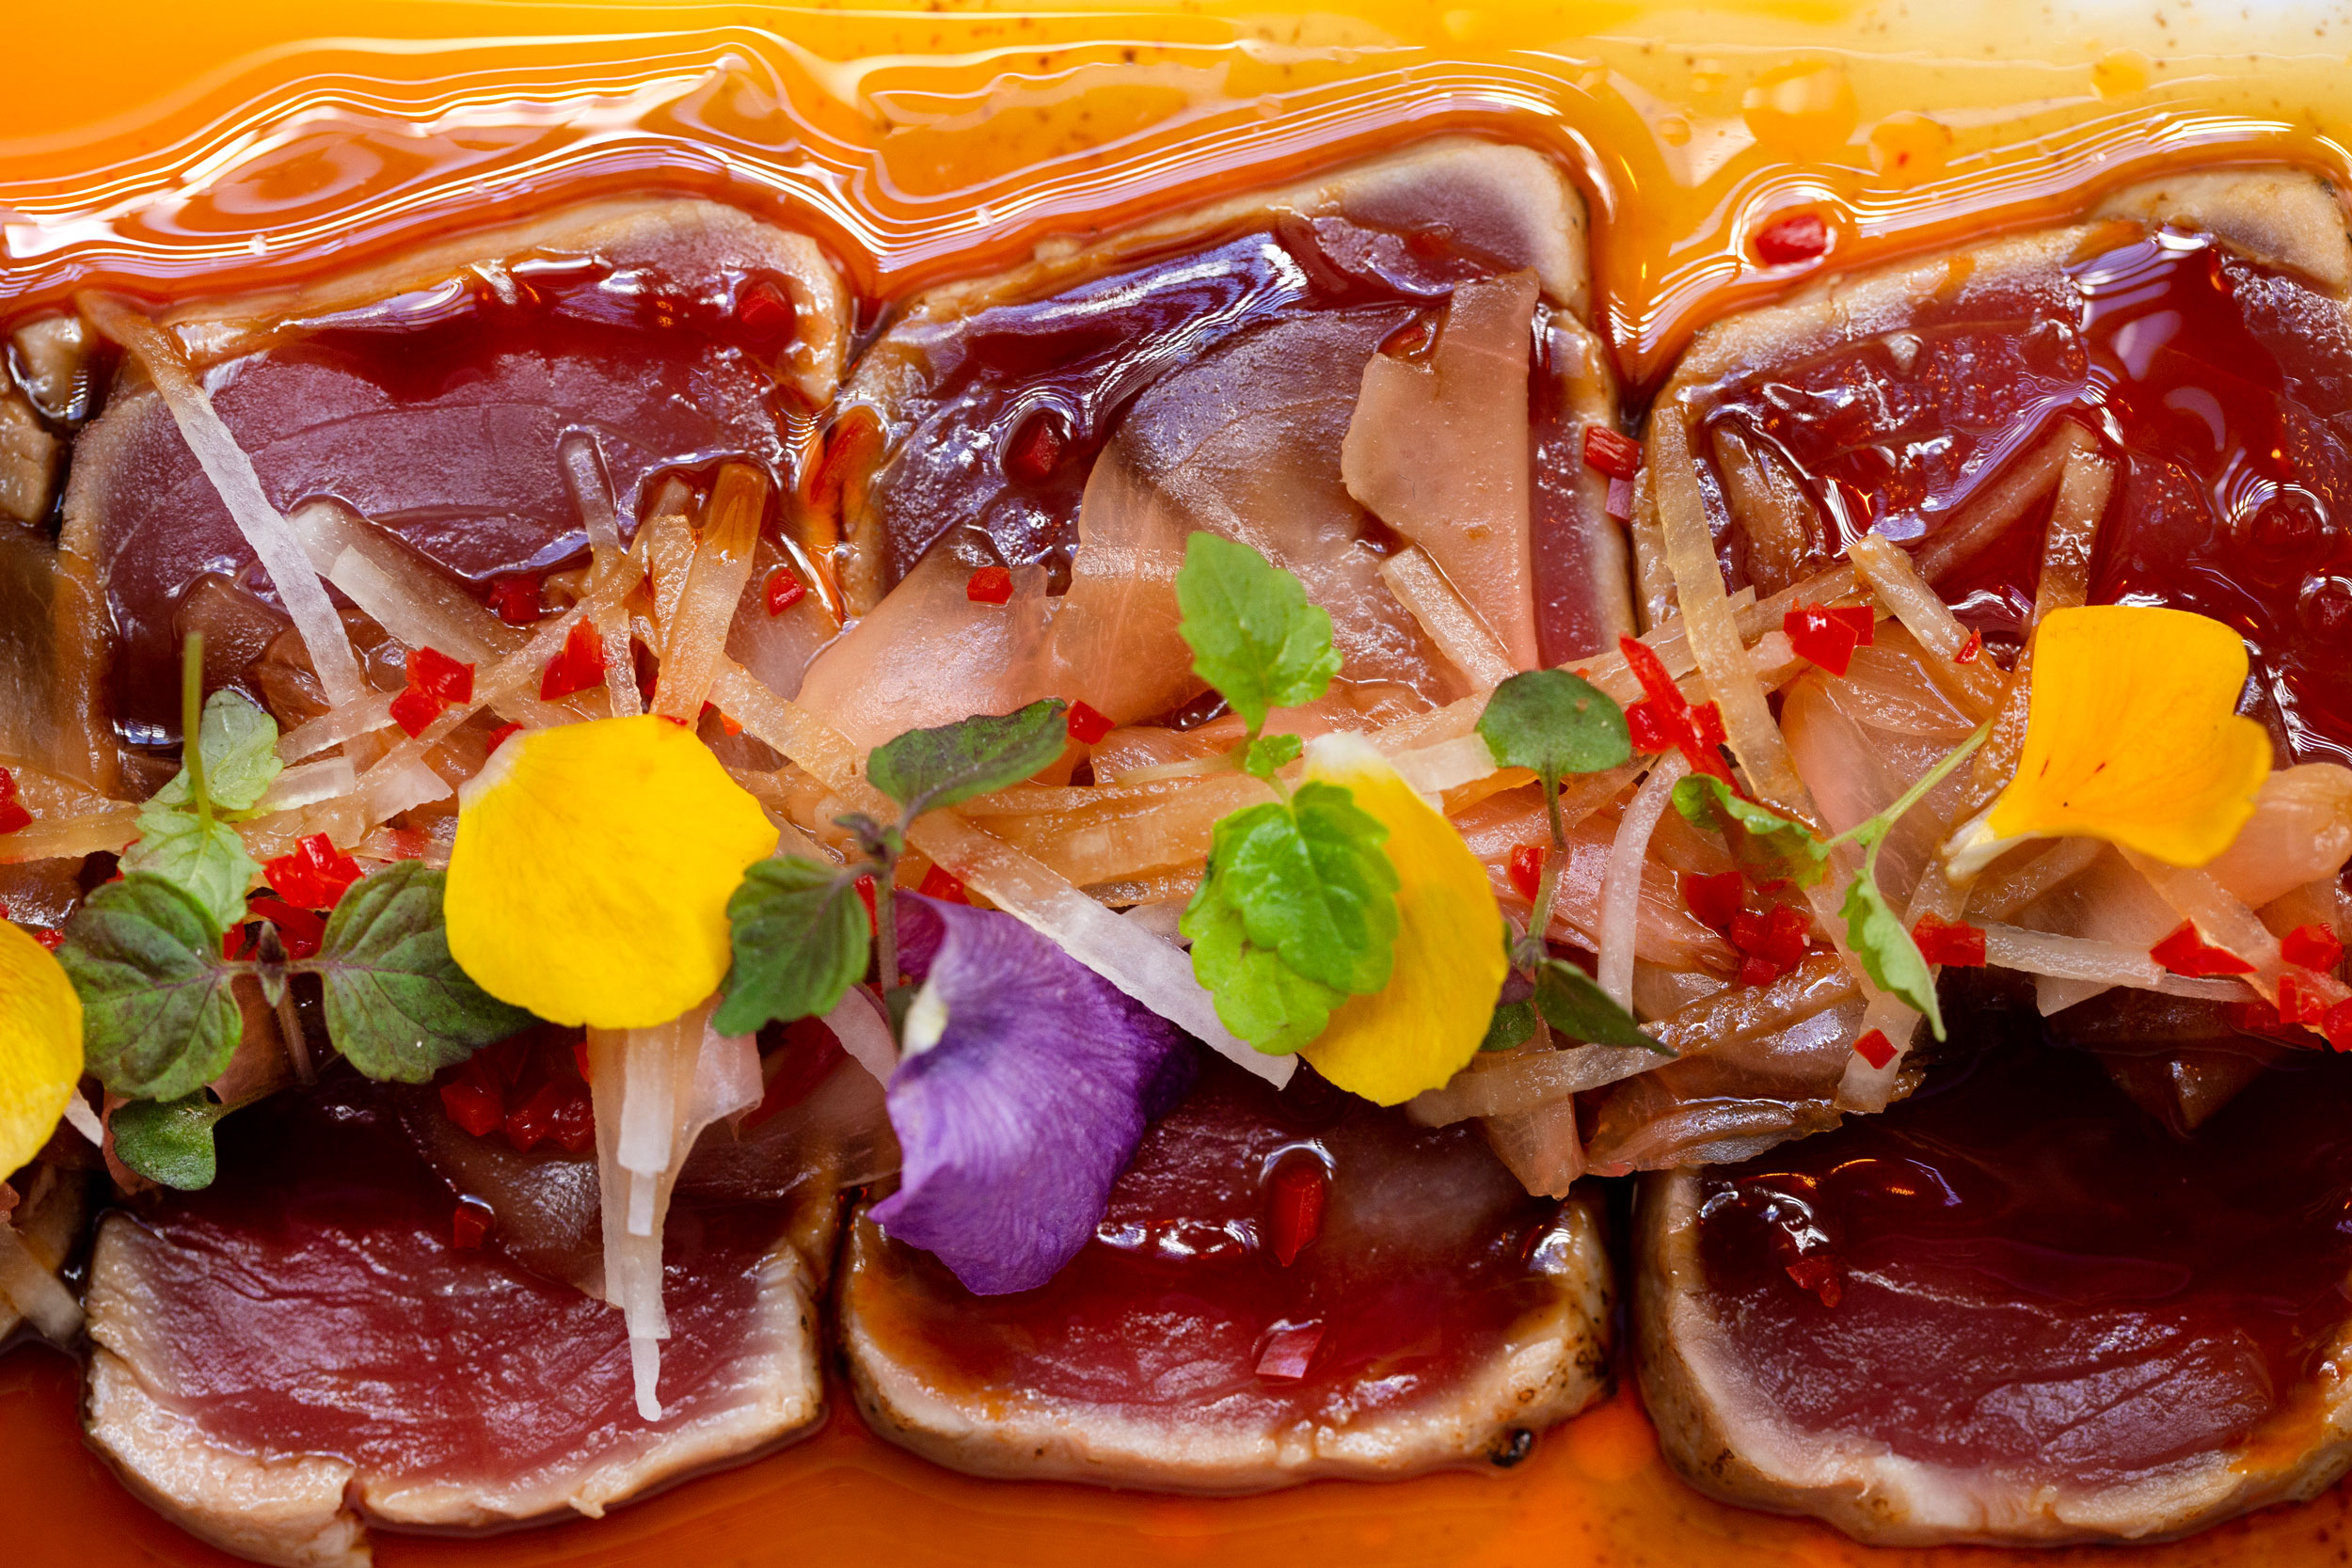 Tuna tataki with yuzu ponzu dressing, pickled ginger, daikon and shiso  - C48A7444